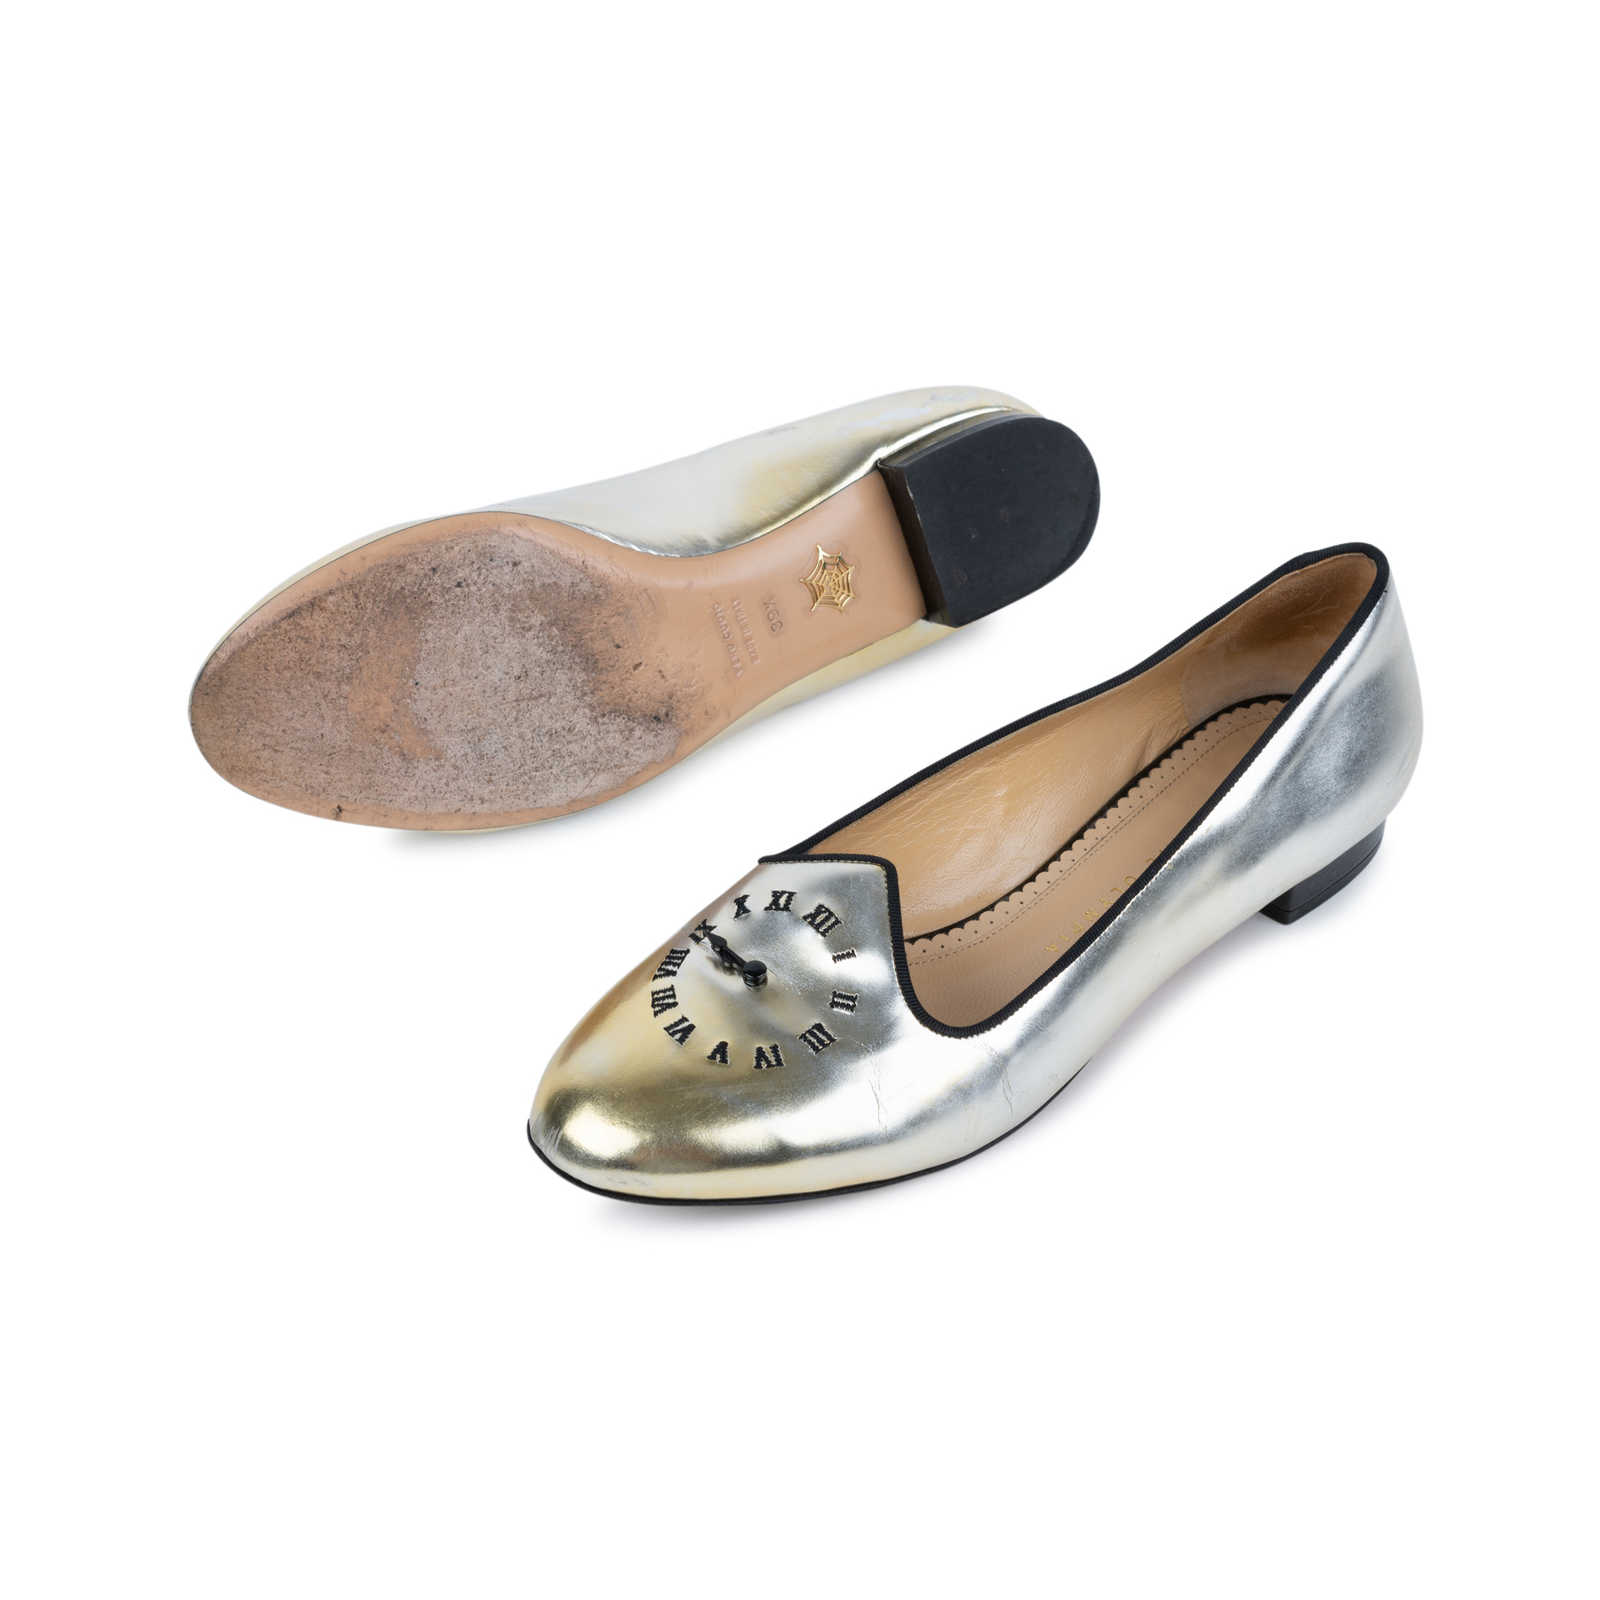 e70aa27e9 ... Authentic Second Hand Charlotte Olympia Fashionably Late Clock Face  Slippers (PSS-552-00035 ...